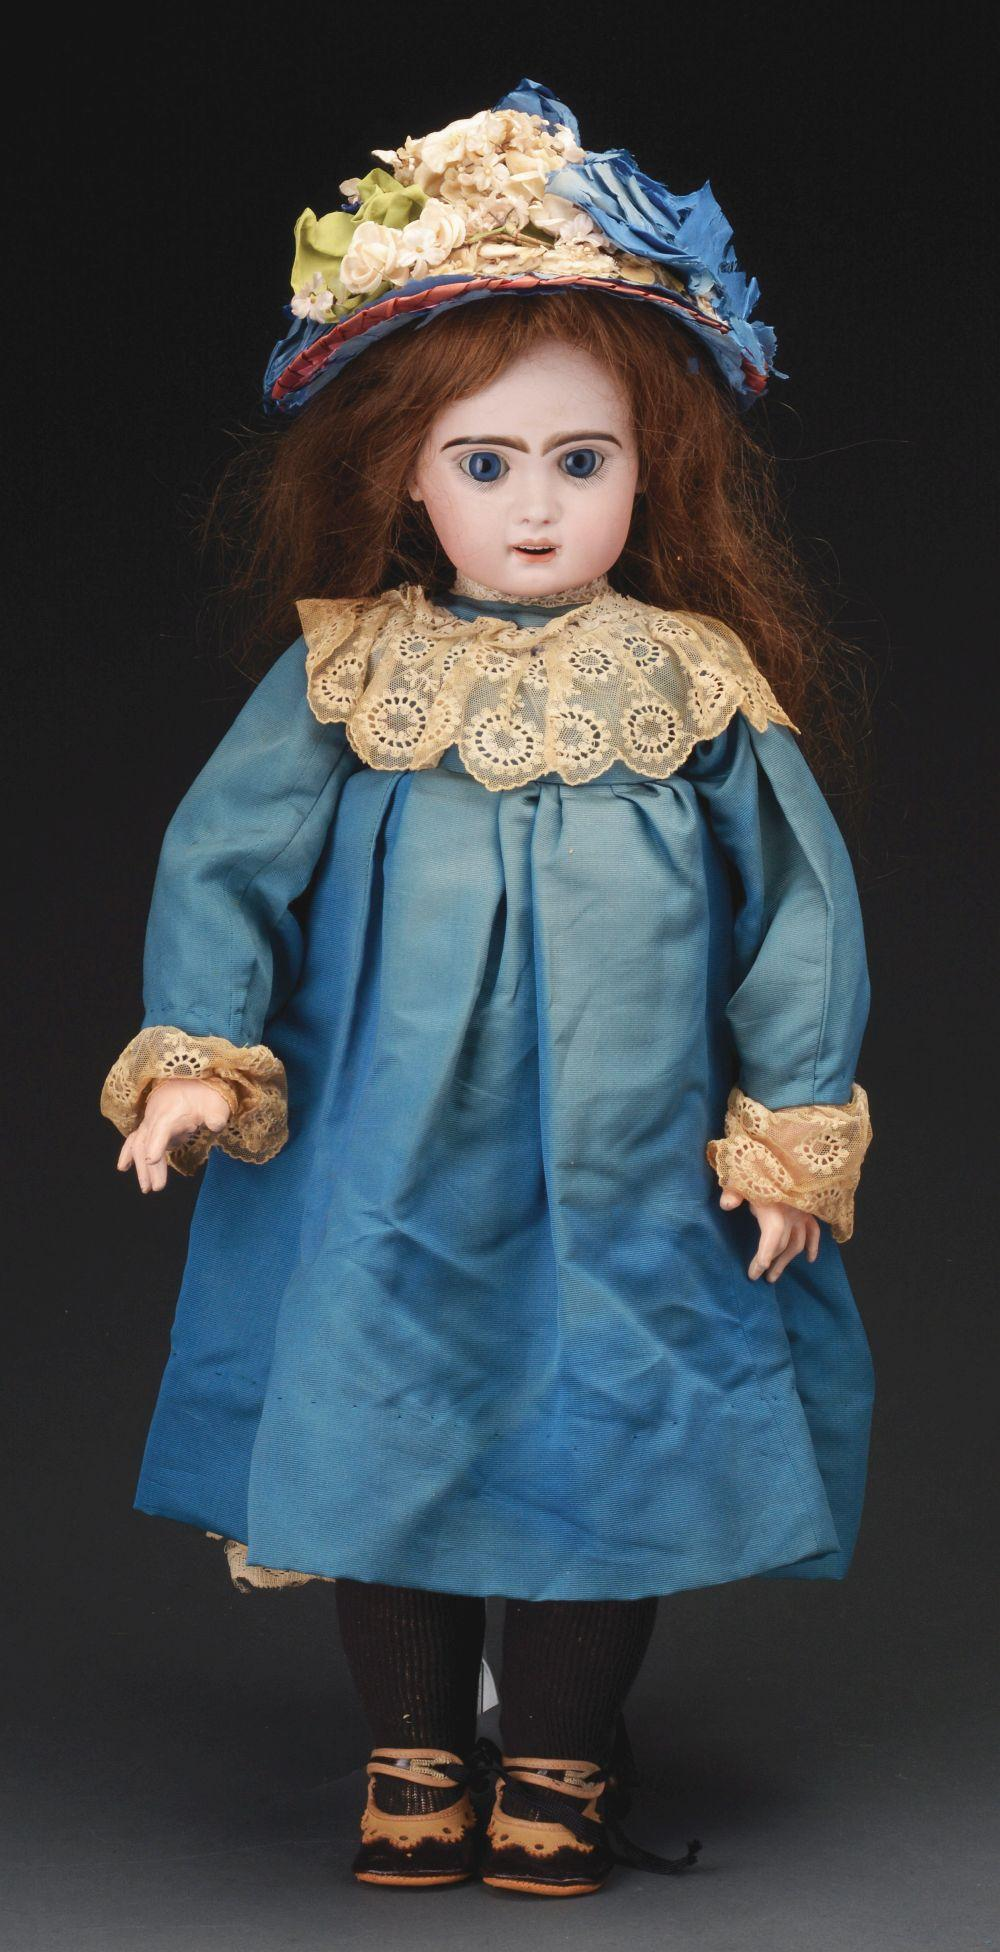 Attractive Open Mouth French Bisque Doll.